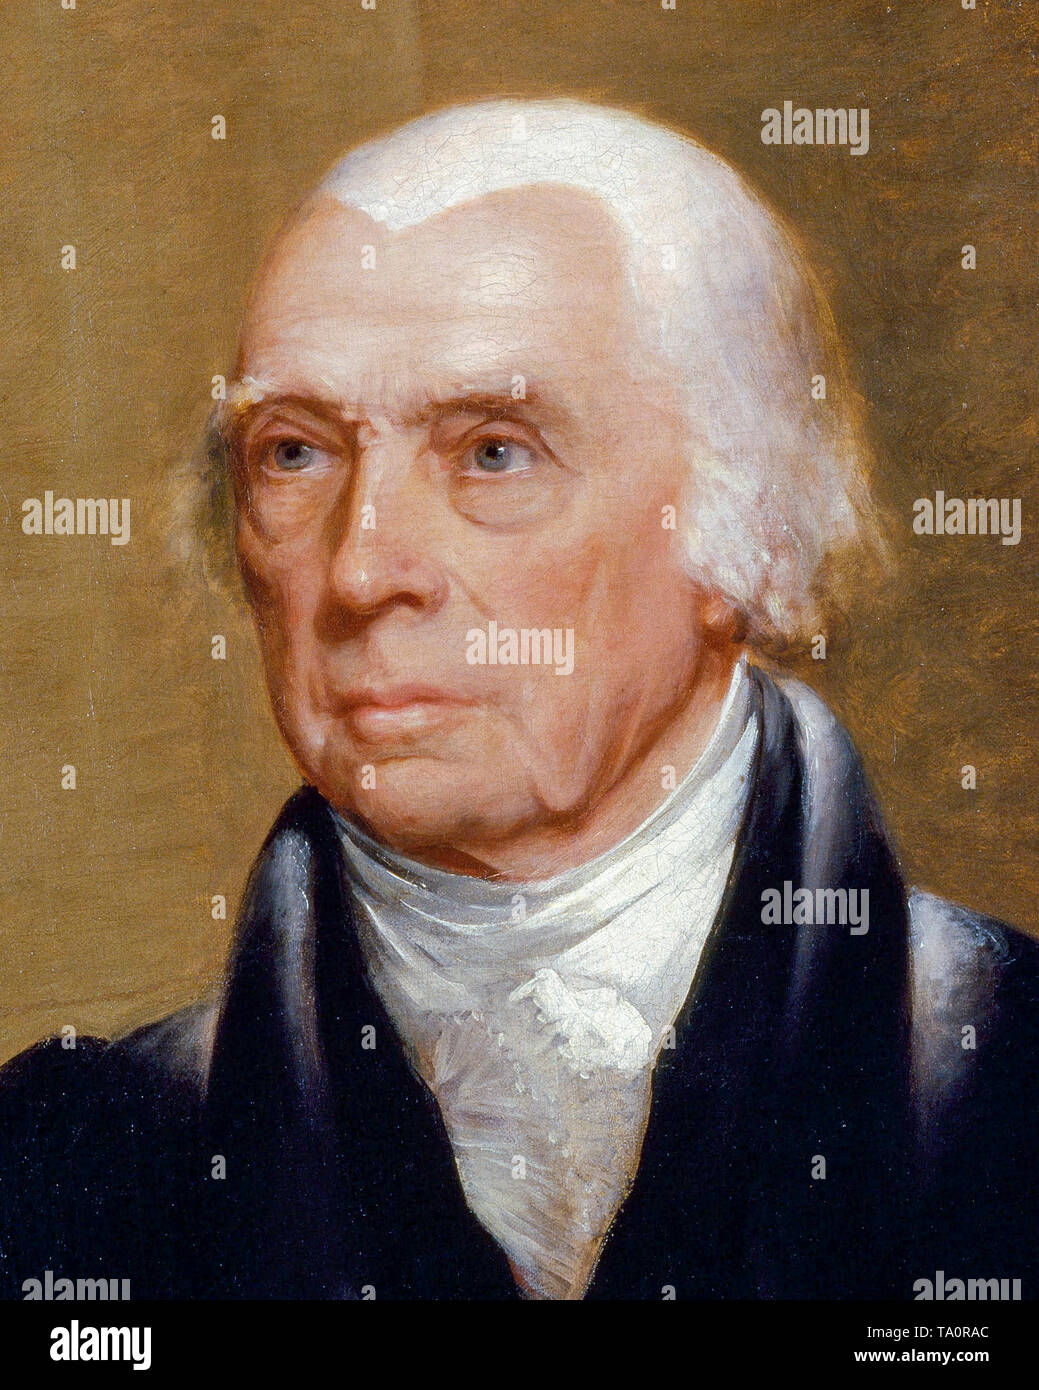 James Madison, portrait painting (detail) by Chester Harding c. 1829 - Stock Image